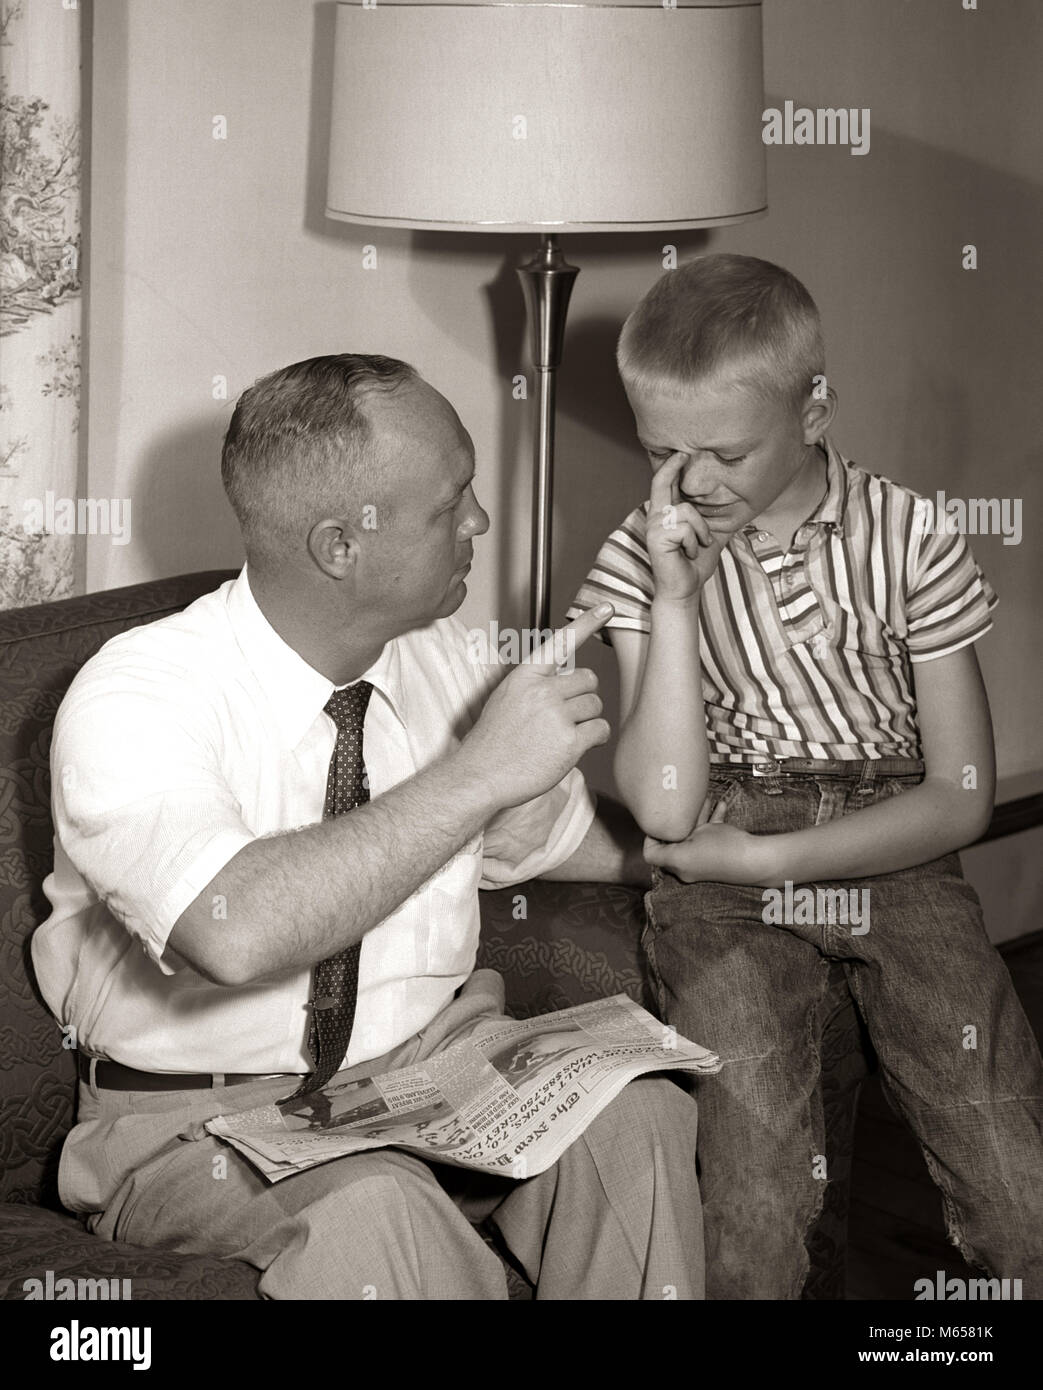 1960s FATHER DISCIPLINING UPSET CRYING SON - j5959 CRS001 HARS SONS LIFESTYLE PARENTING GROWNUP HOME LIFE PEOPLE - Stock Image